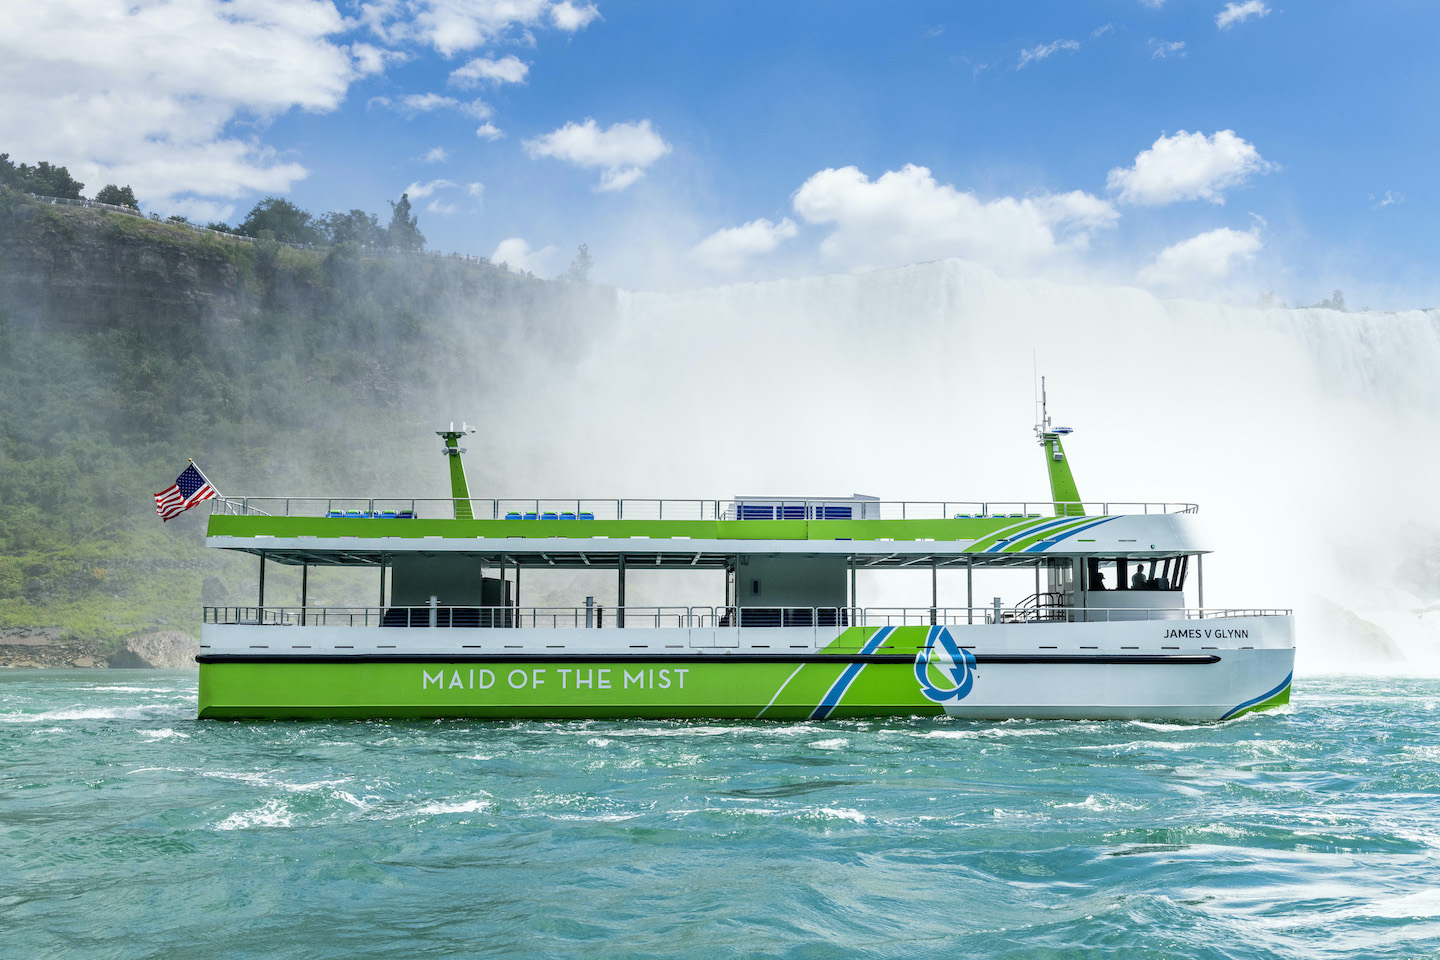 Image courtesy of the Maid of the Mist